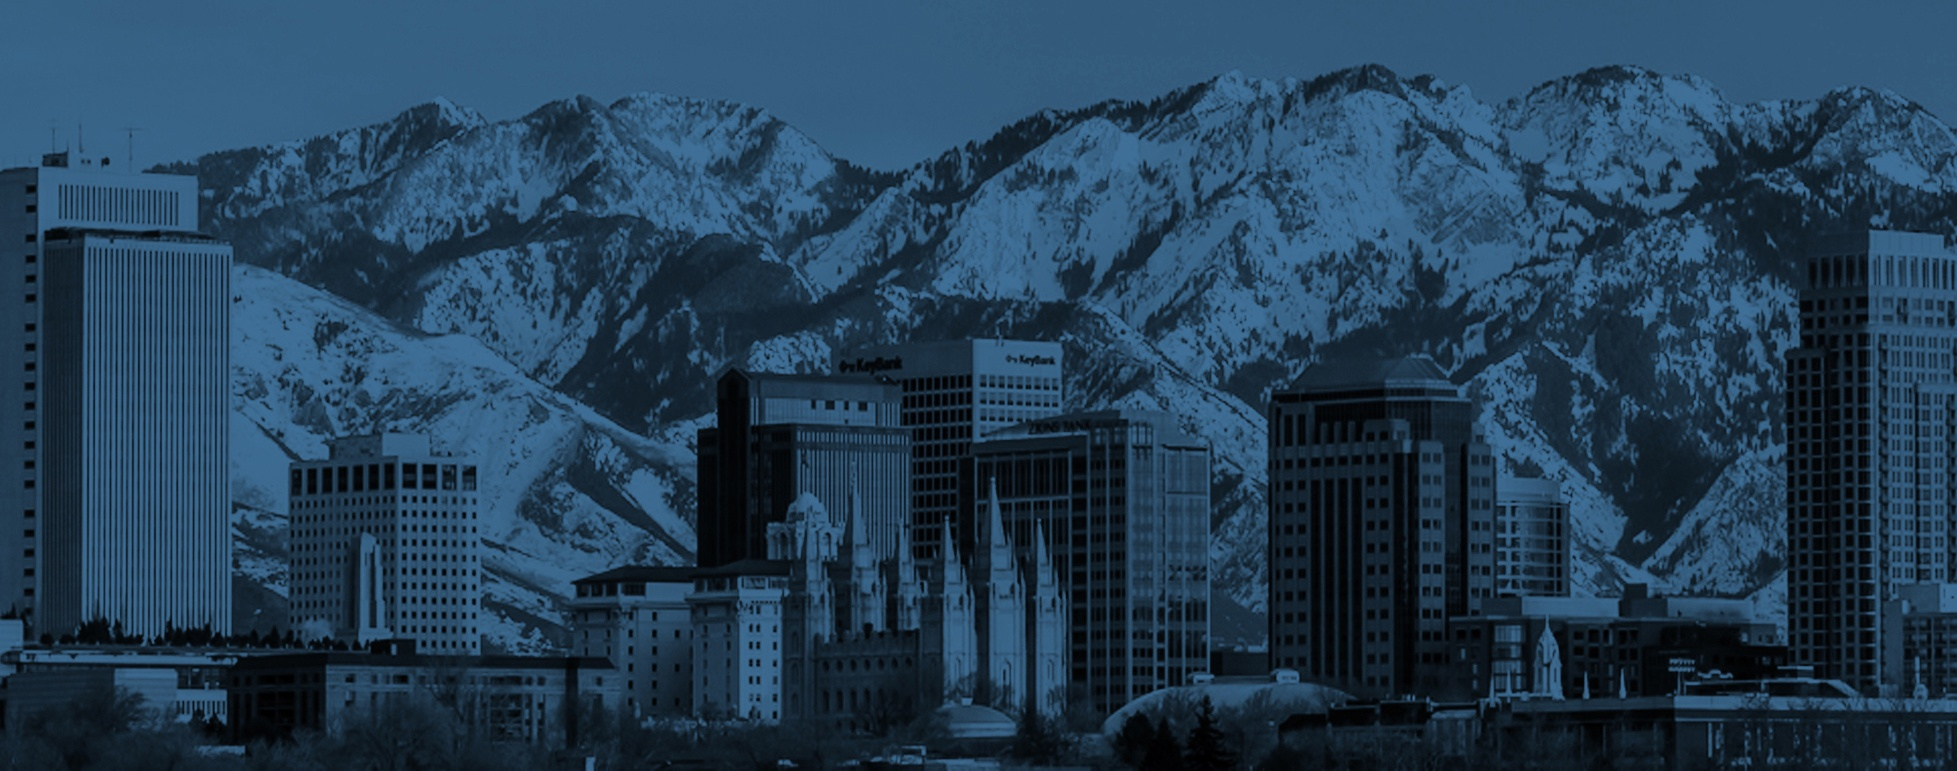 SLC-Slider-Skyline-1.jpg